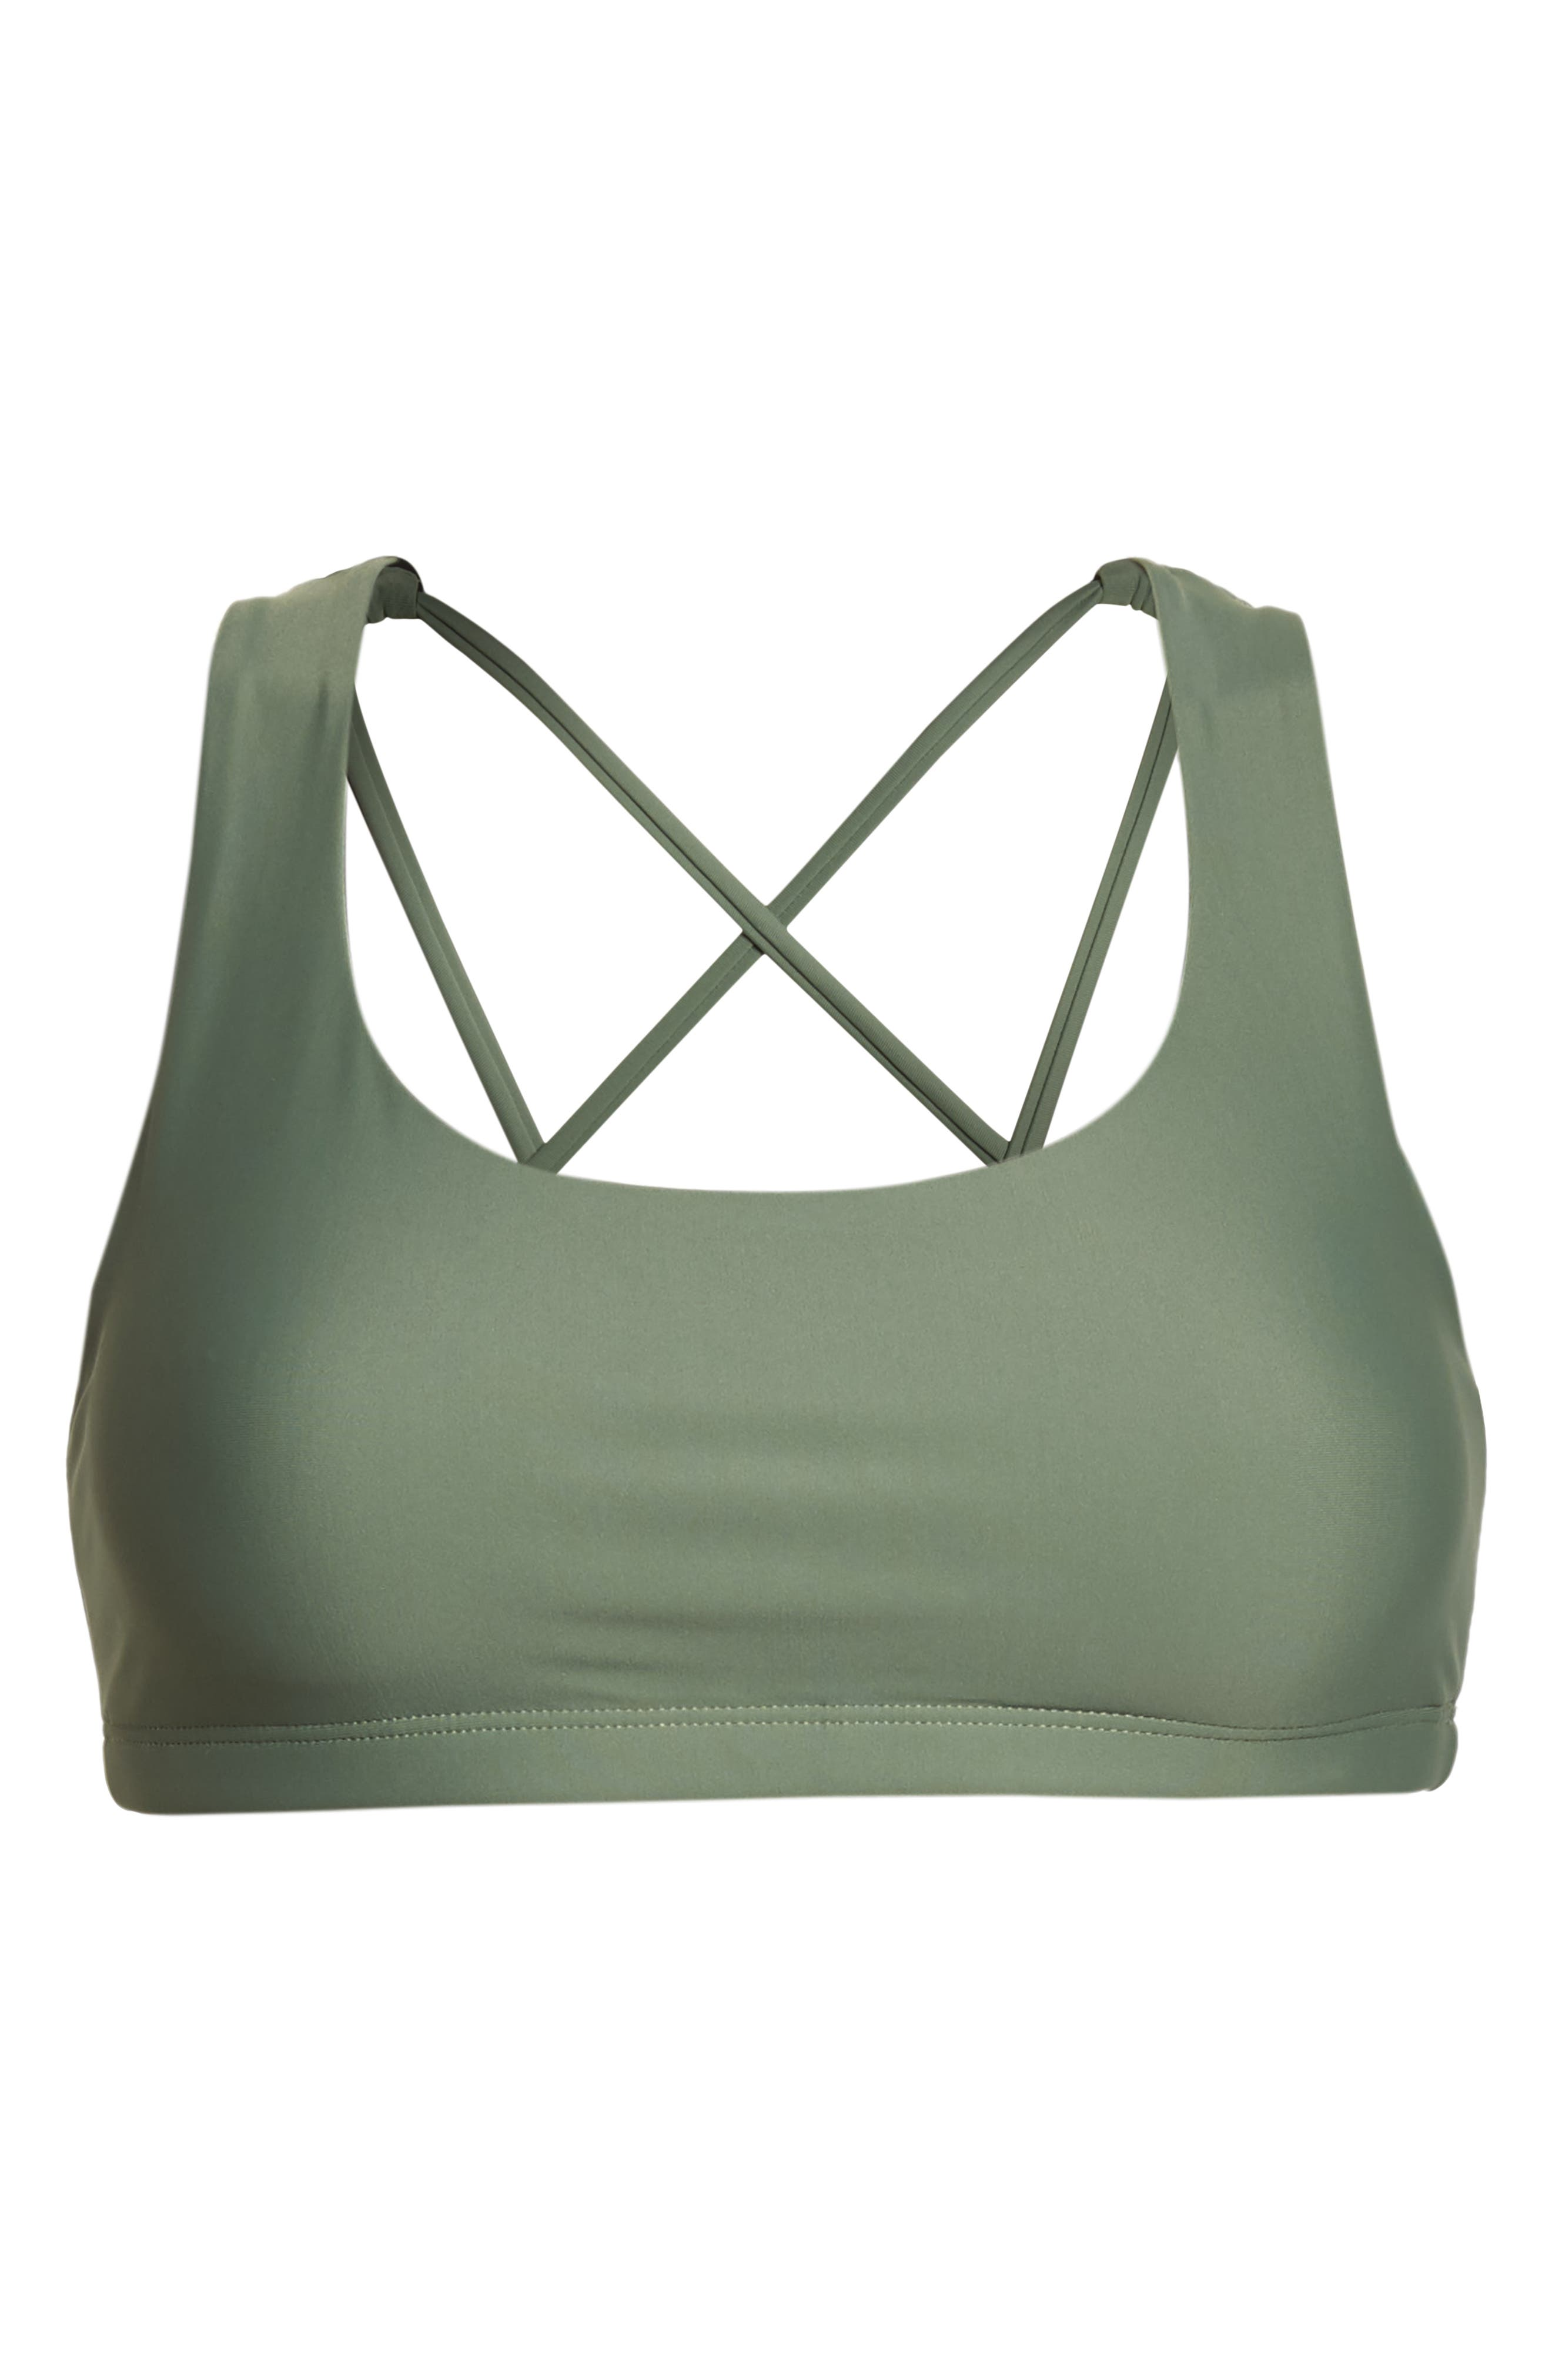 Mudra Sports Bra,                             Alternate thumbnail 7, color,                             Sage